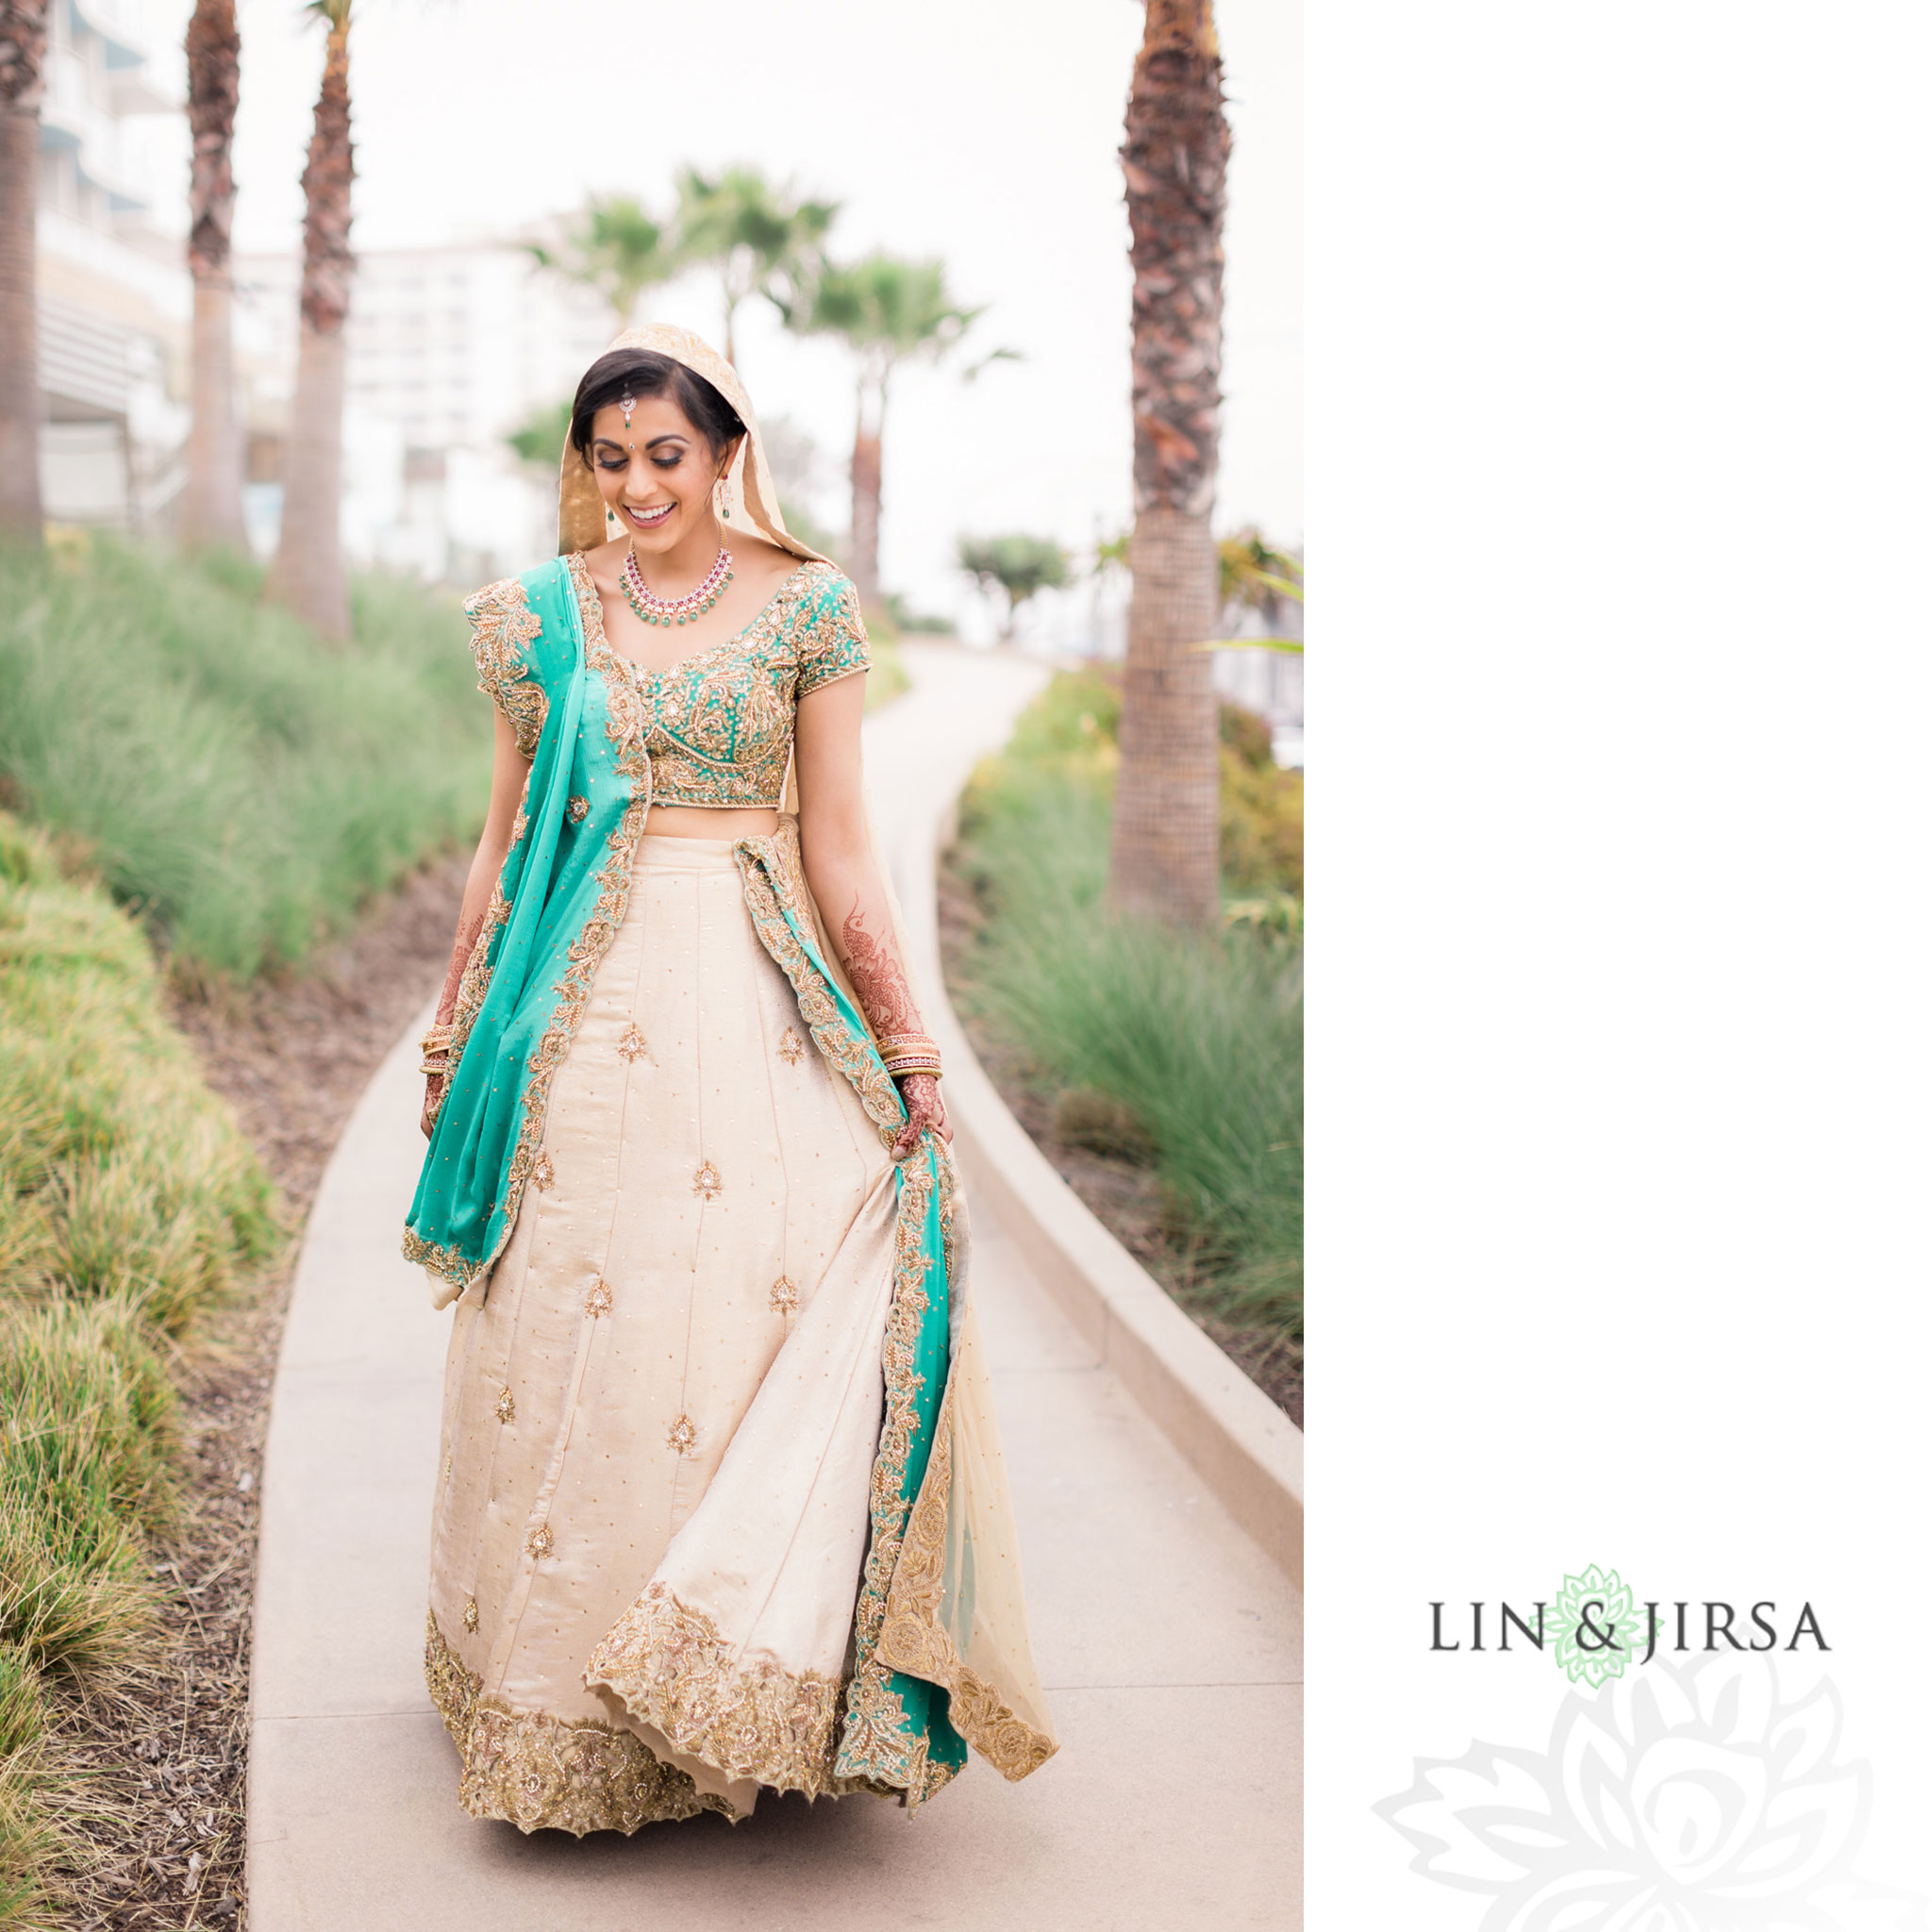 07 pasea hotel and spa huntington beach indian bride wedding photography